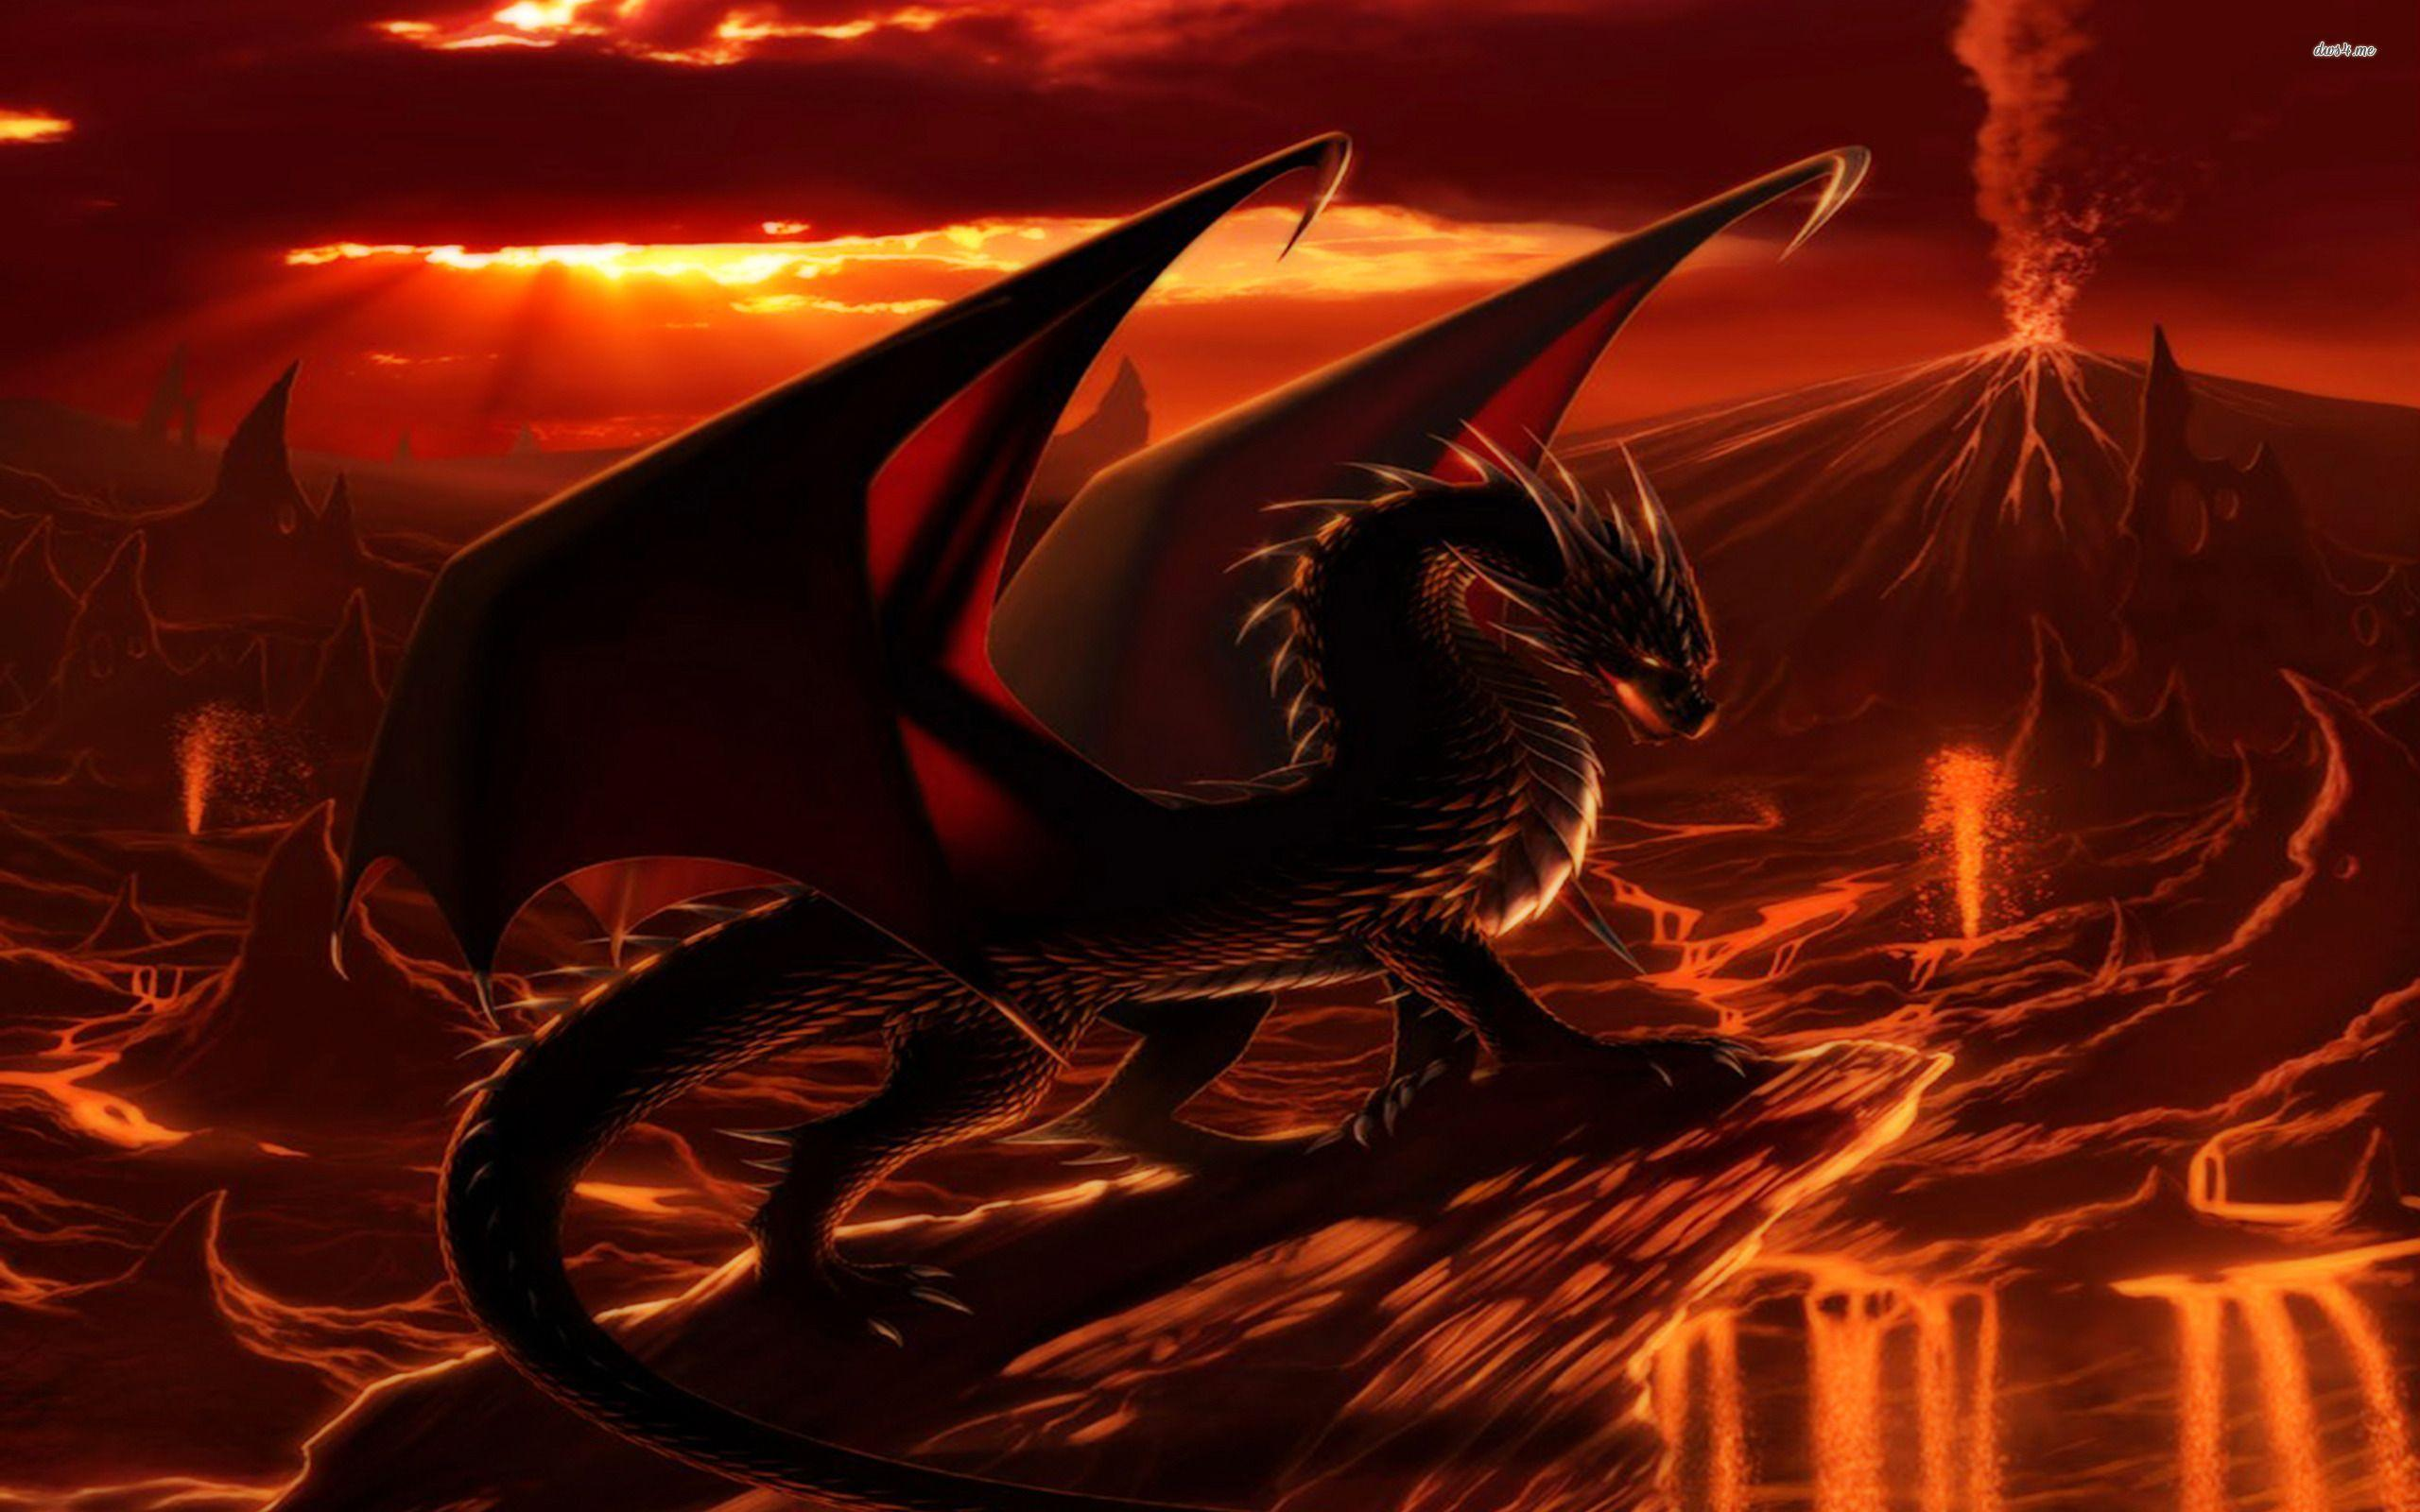 Fire Dragon Wallpapers 2560x1600